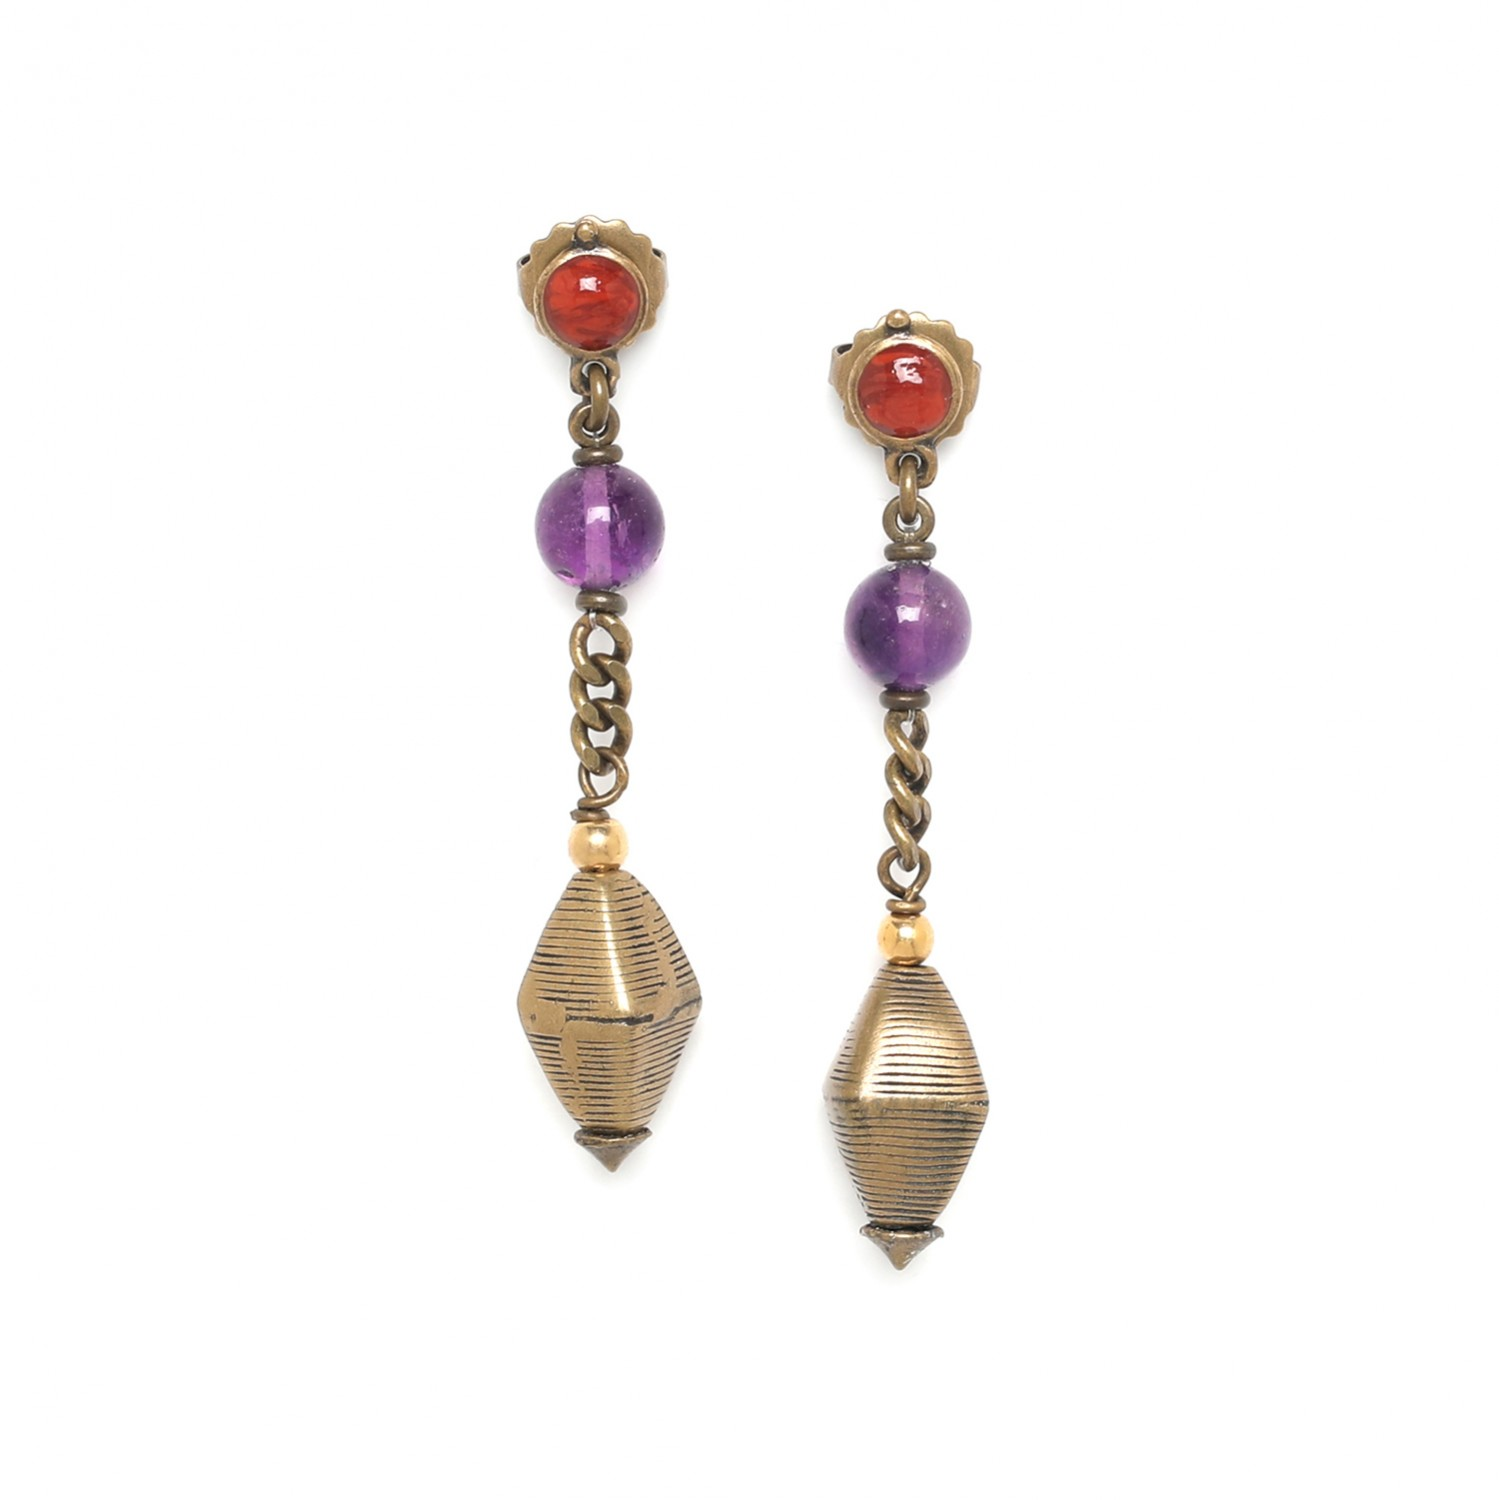 MELTING POT boucles d'oreilles perle laiton africaine